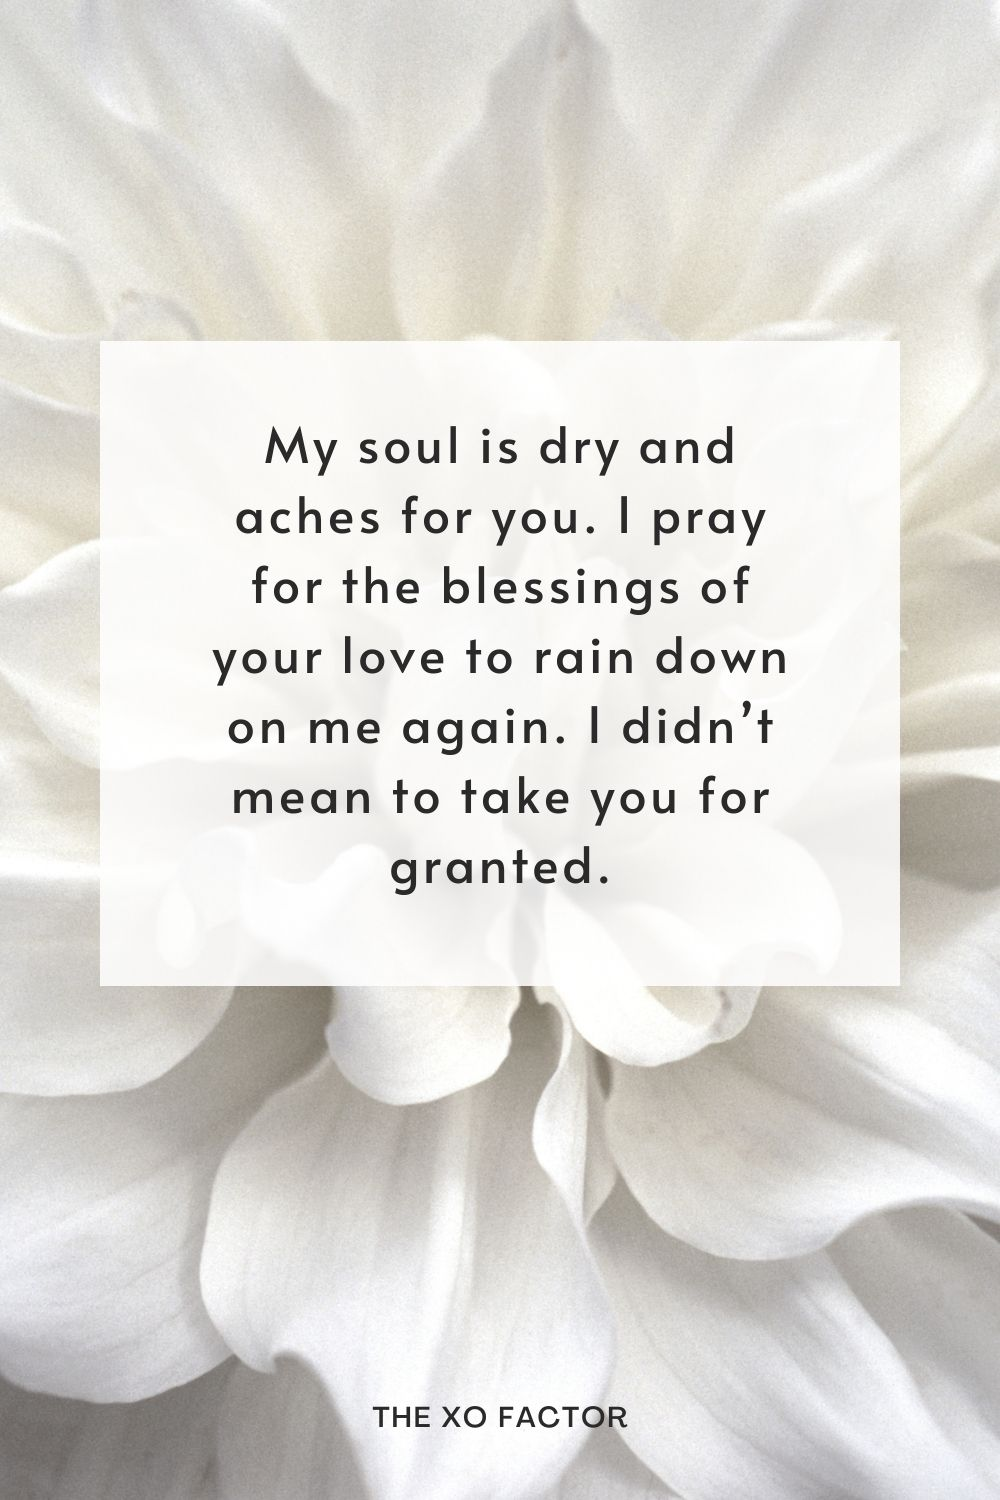 My soul is dry and aches for you. I pray for the blessings of your love to rain down on me again. I didn't mean to take you for granted.